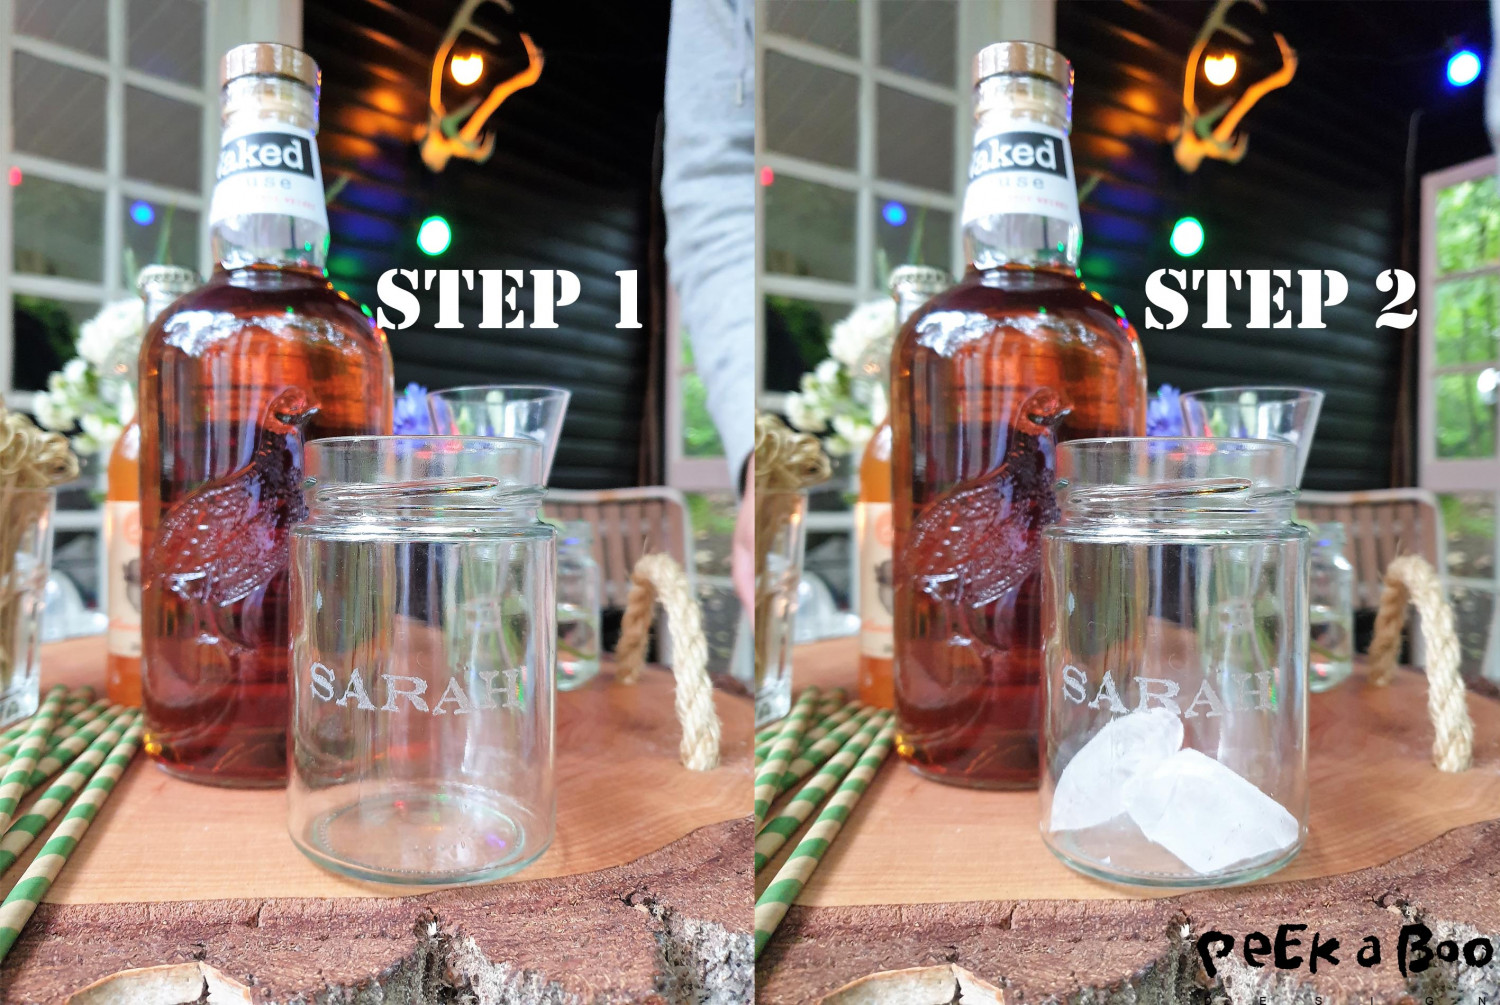 Step 1 and 2. Start by collecting the ingrediens on your table. Add ice cubes to your glass.